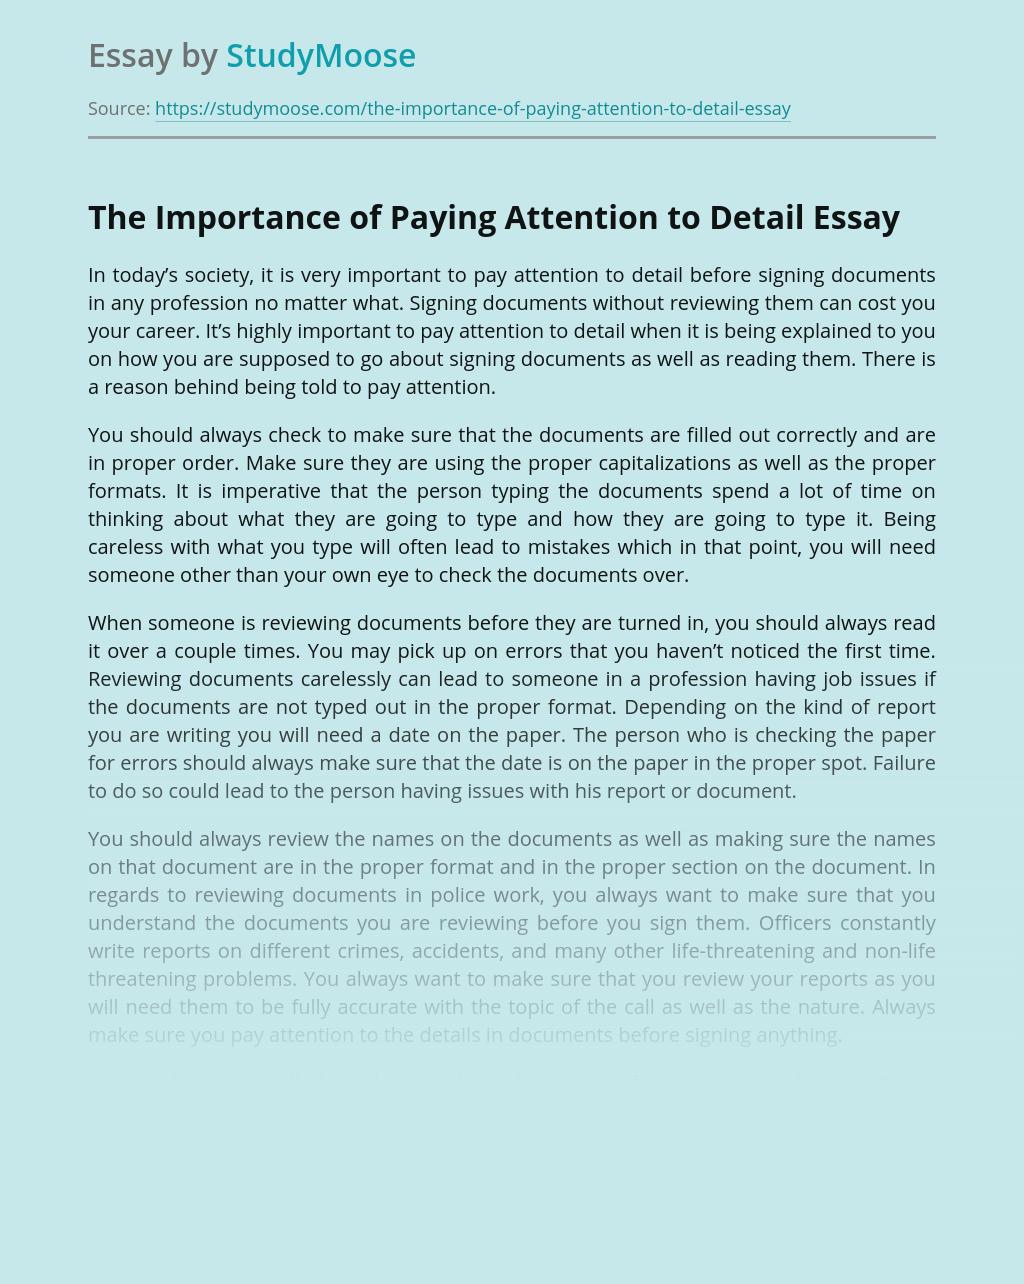 Pay attention essay